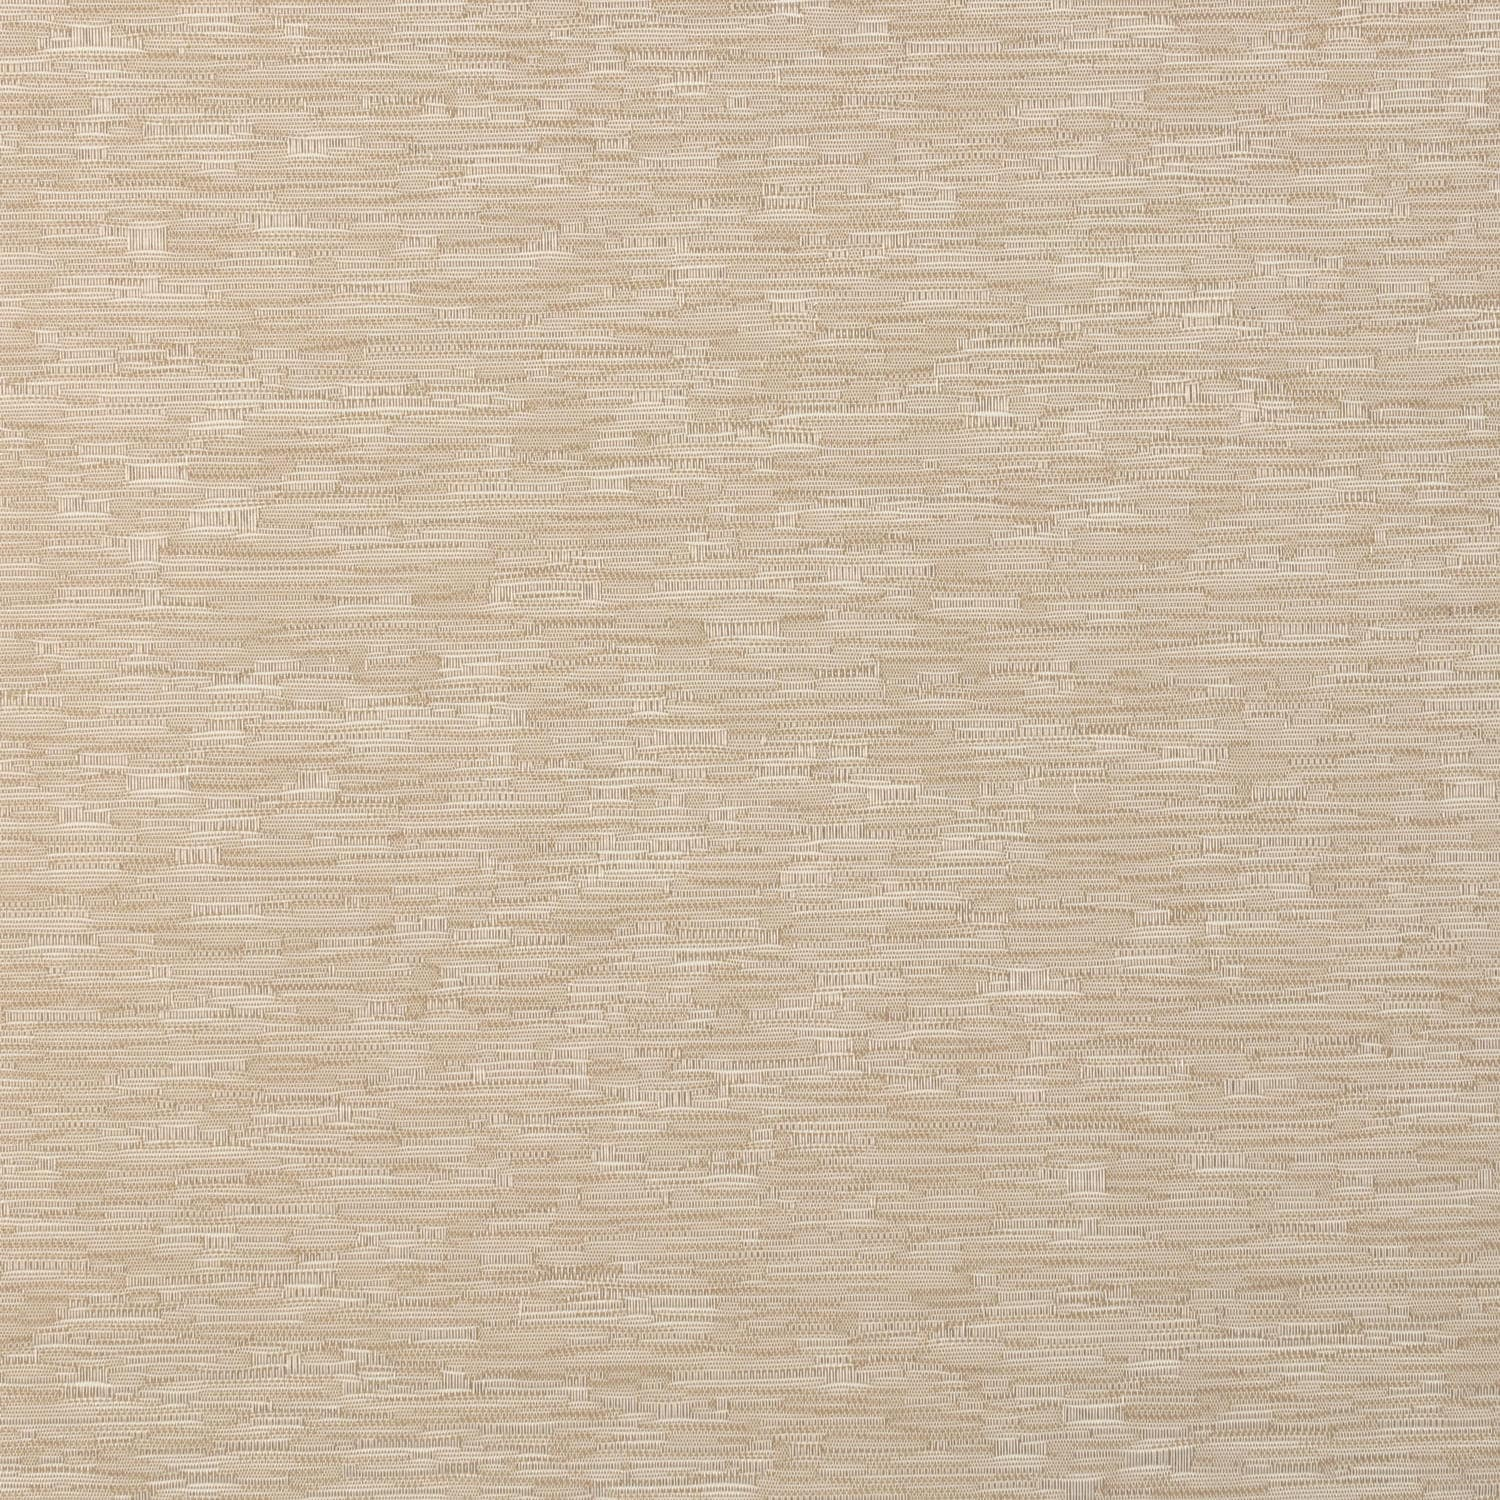 Klamath Khaki Dobby Textured Blackout Roller Shade Swatch